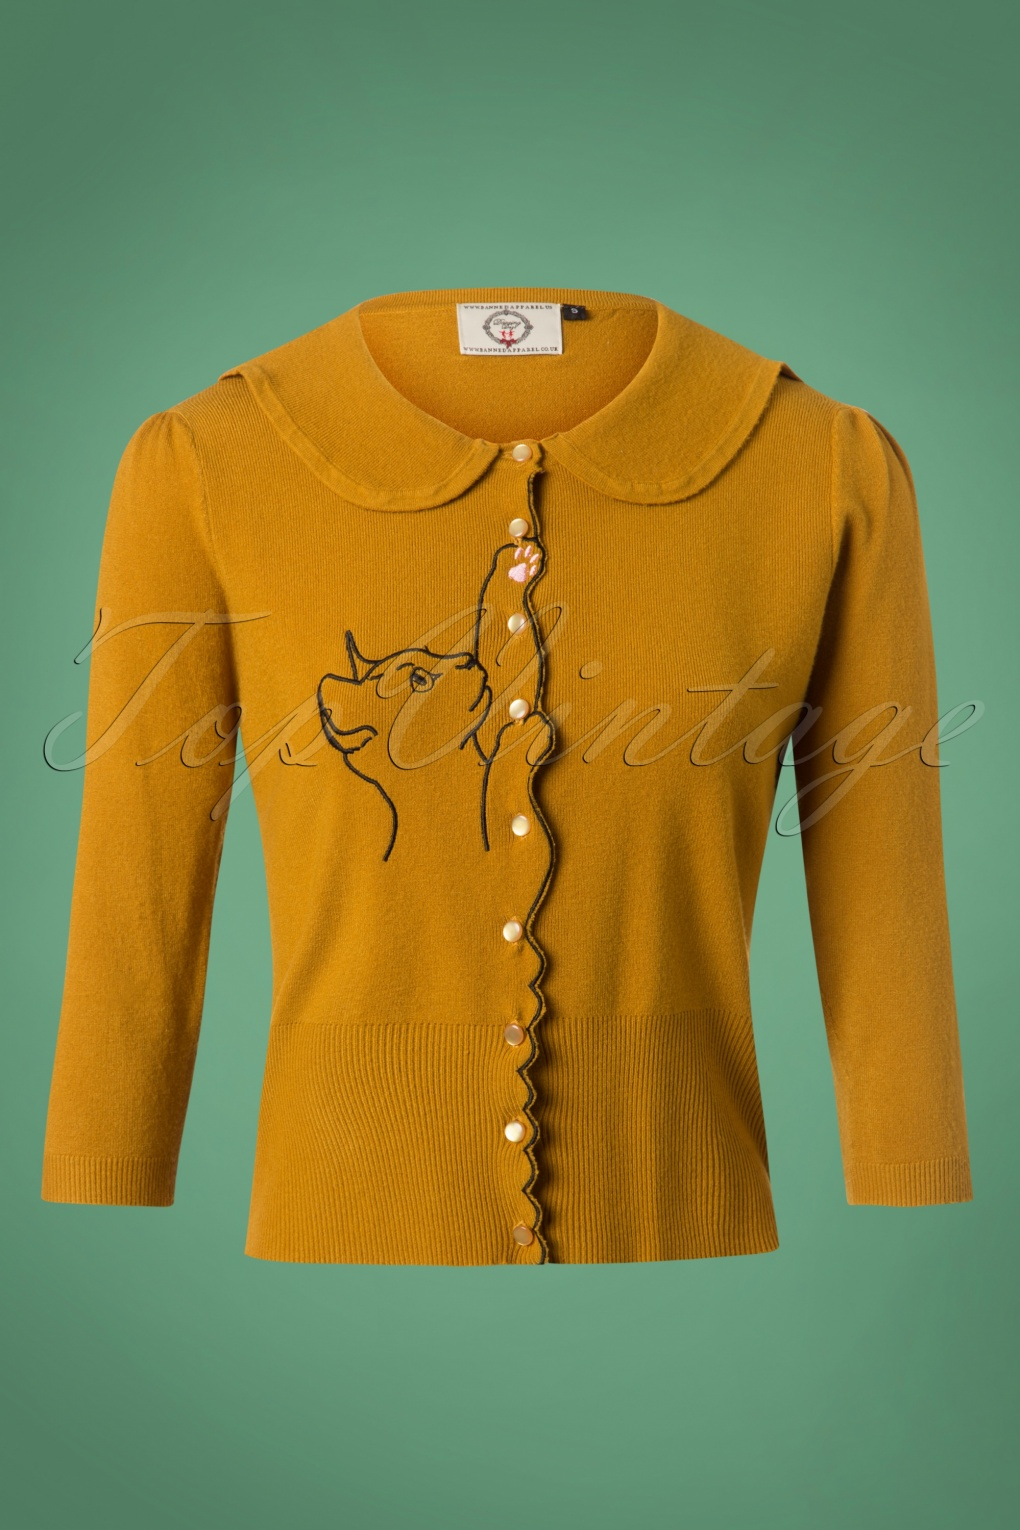 1950s Sweaters, 50s Cardigans, Twin Sweater Sets 60s Cat Scallop Collar Cardigan in Mustard £36.86 AT vintagedancer.com